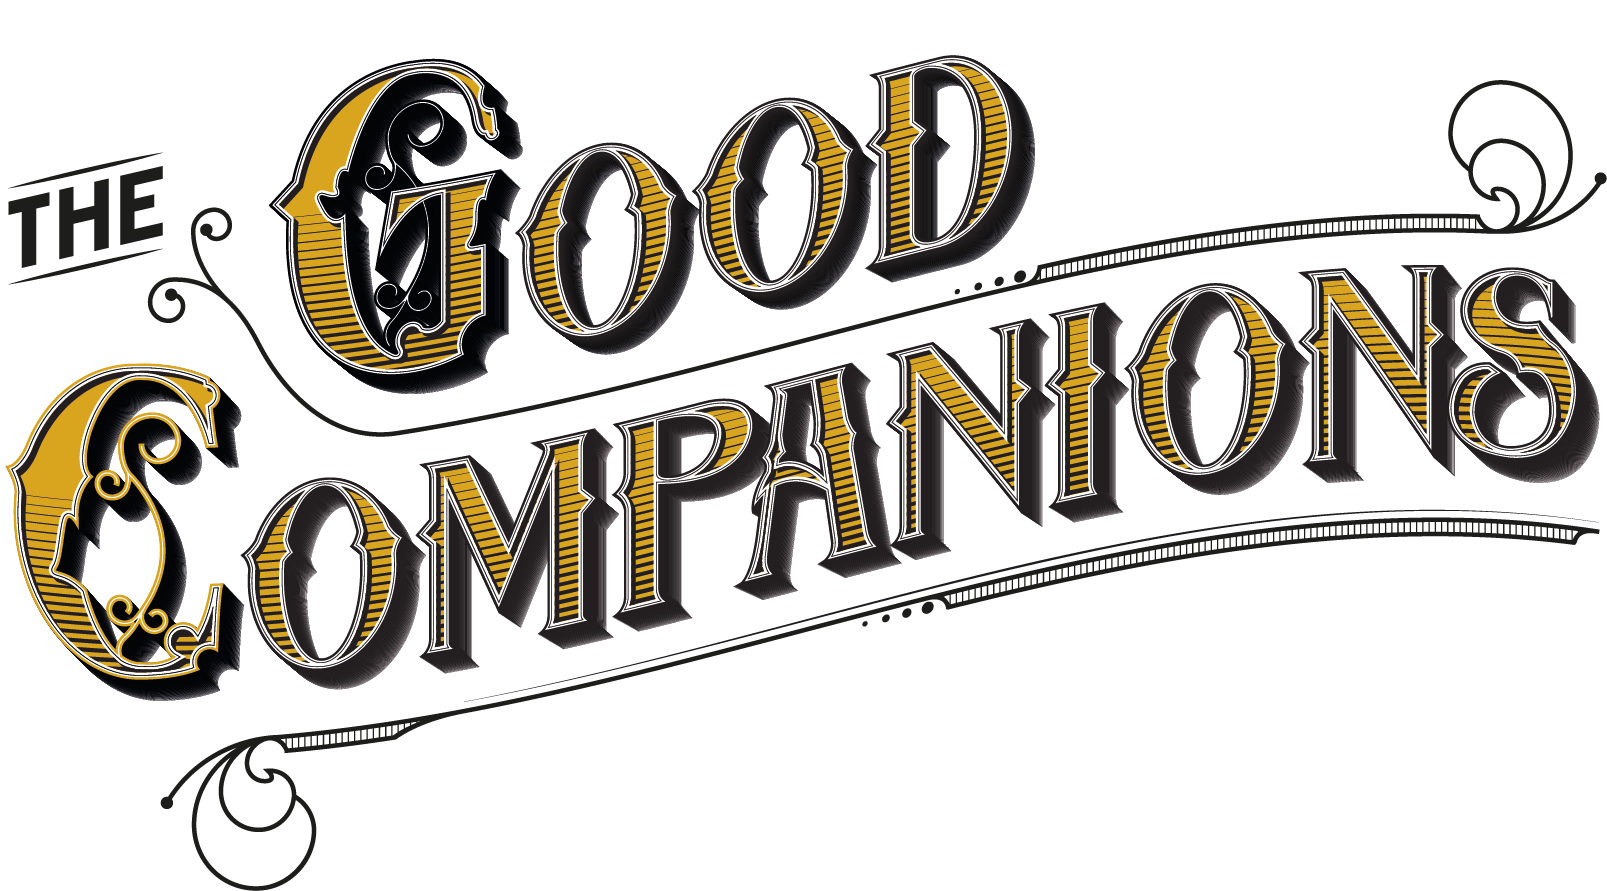 The Good Companions logo